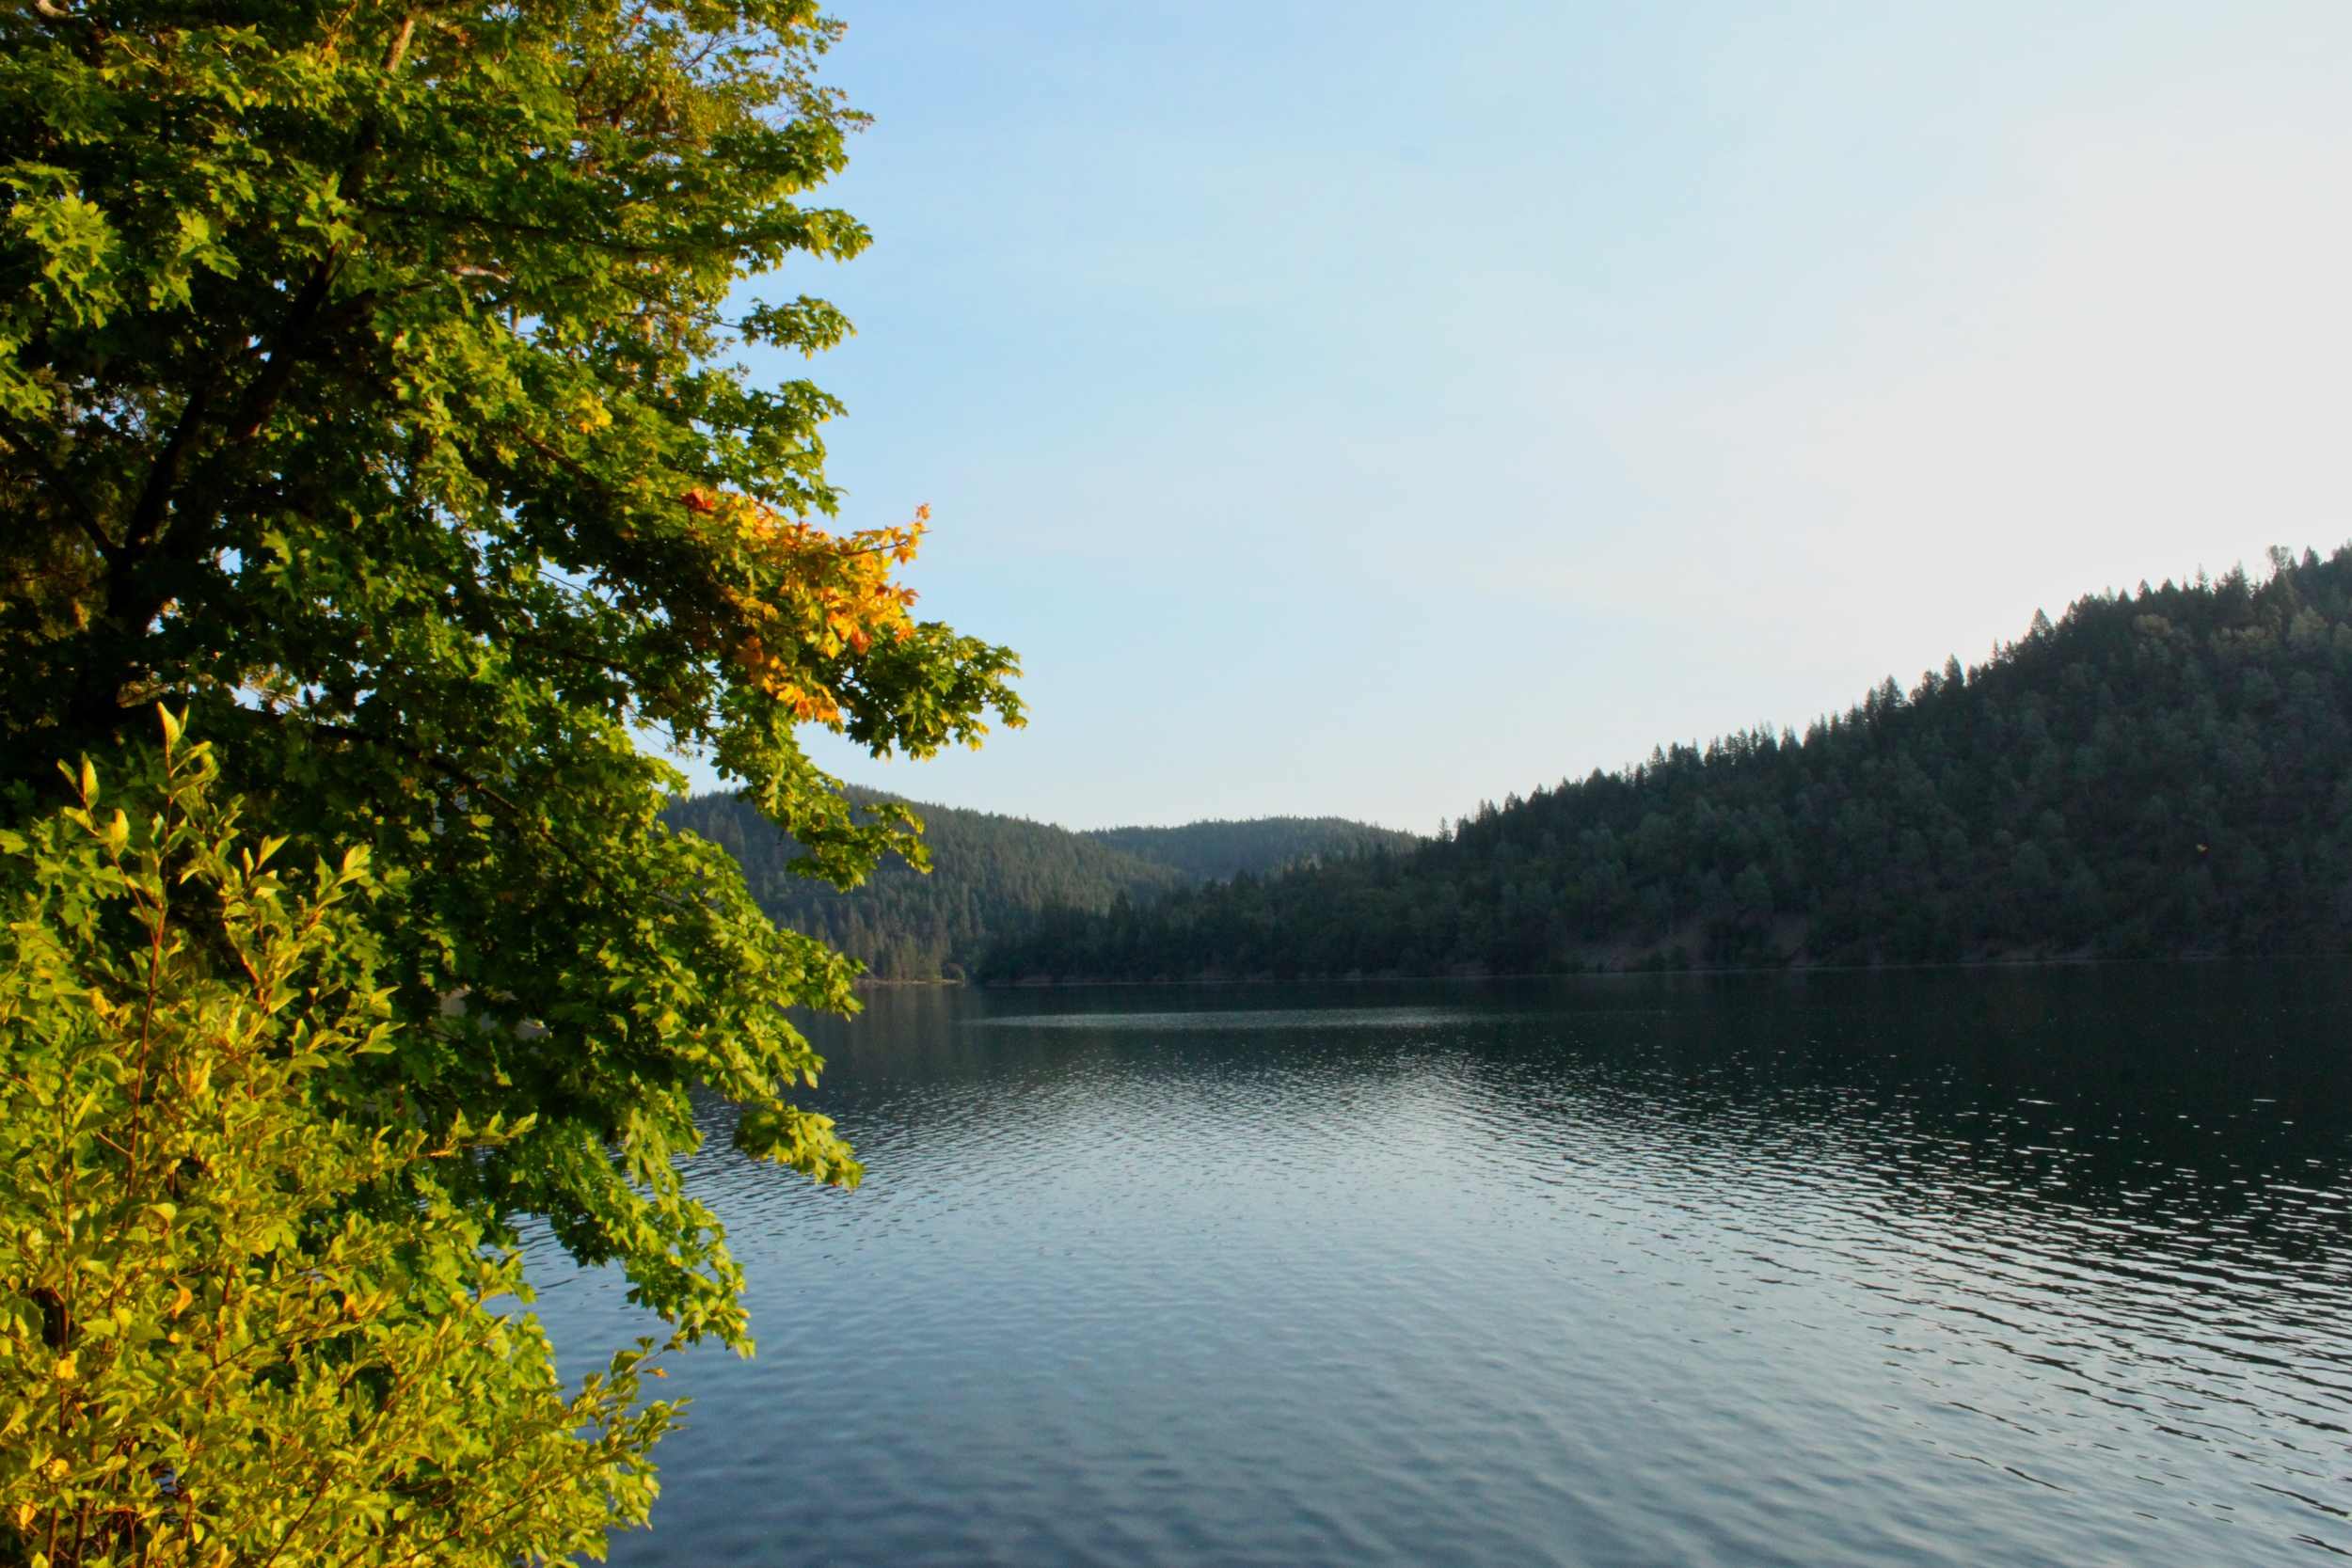 View of Lewiston Lake at Mary Smith Campground